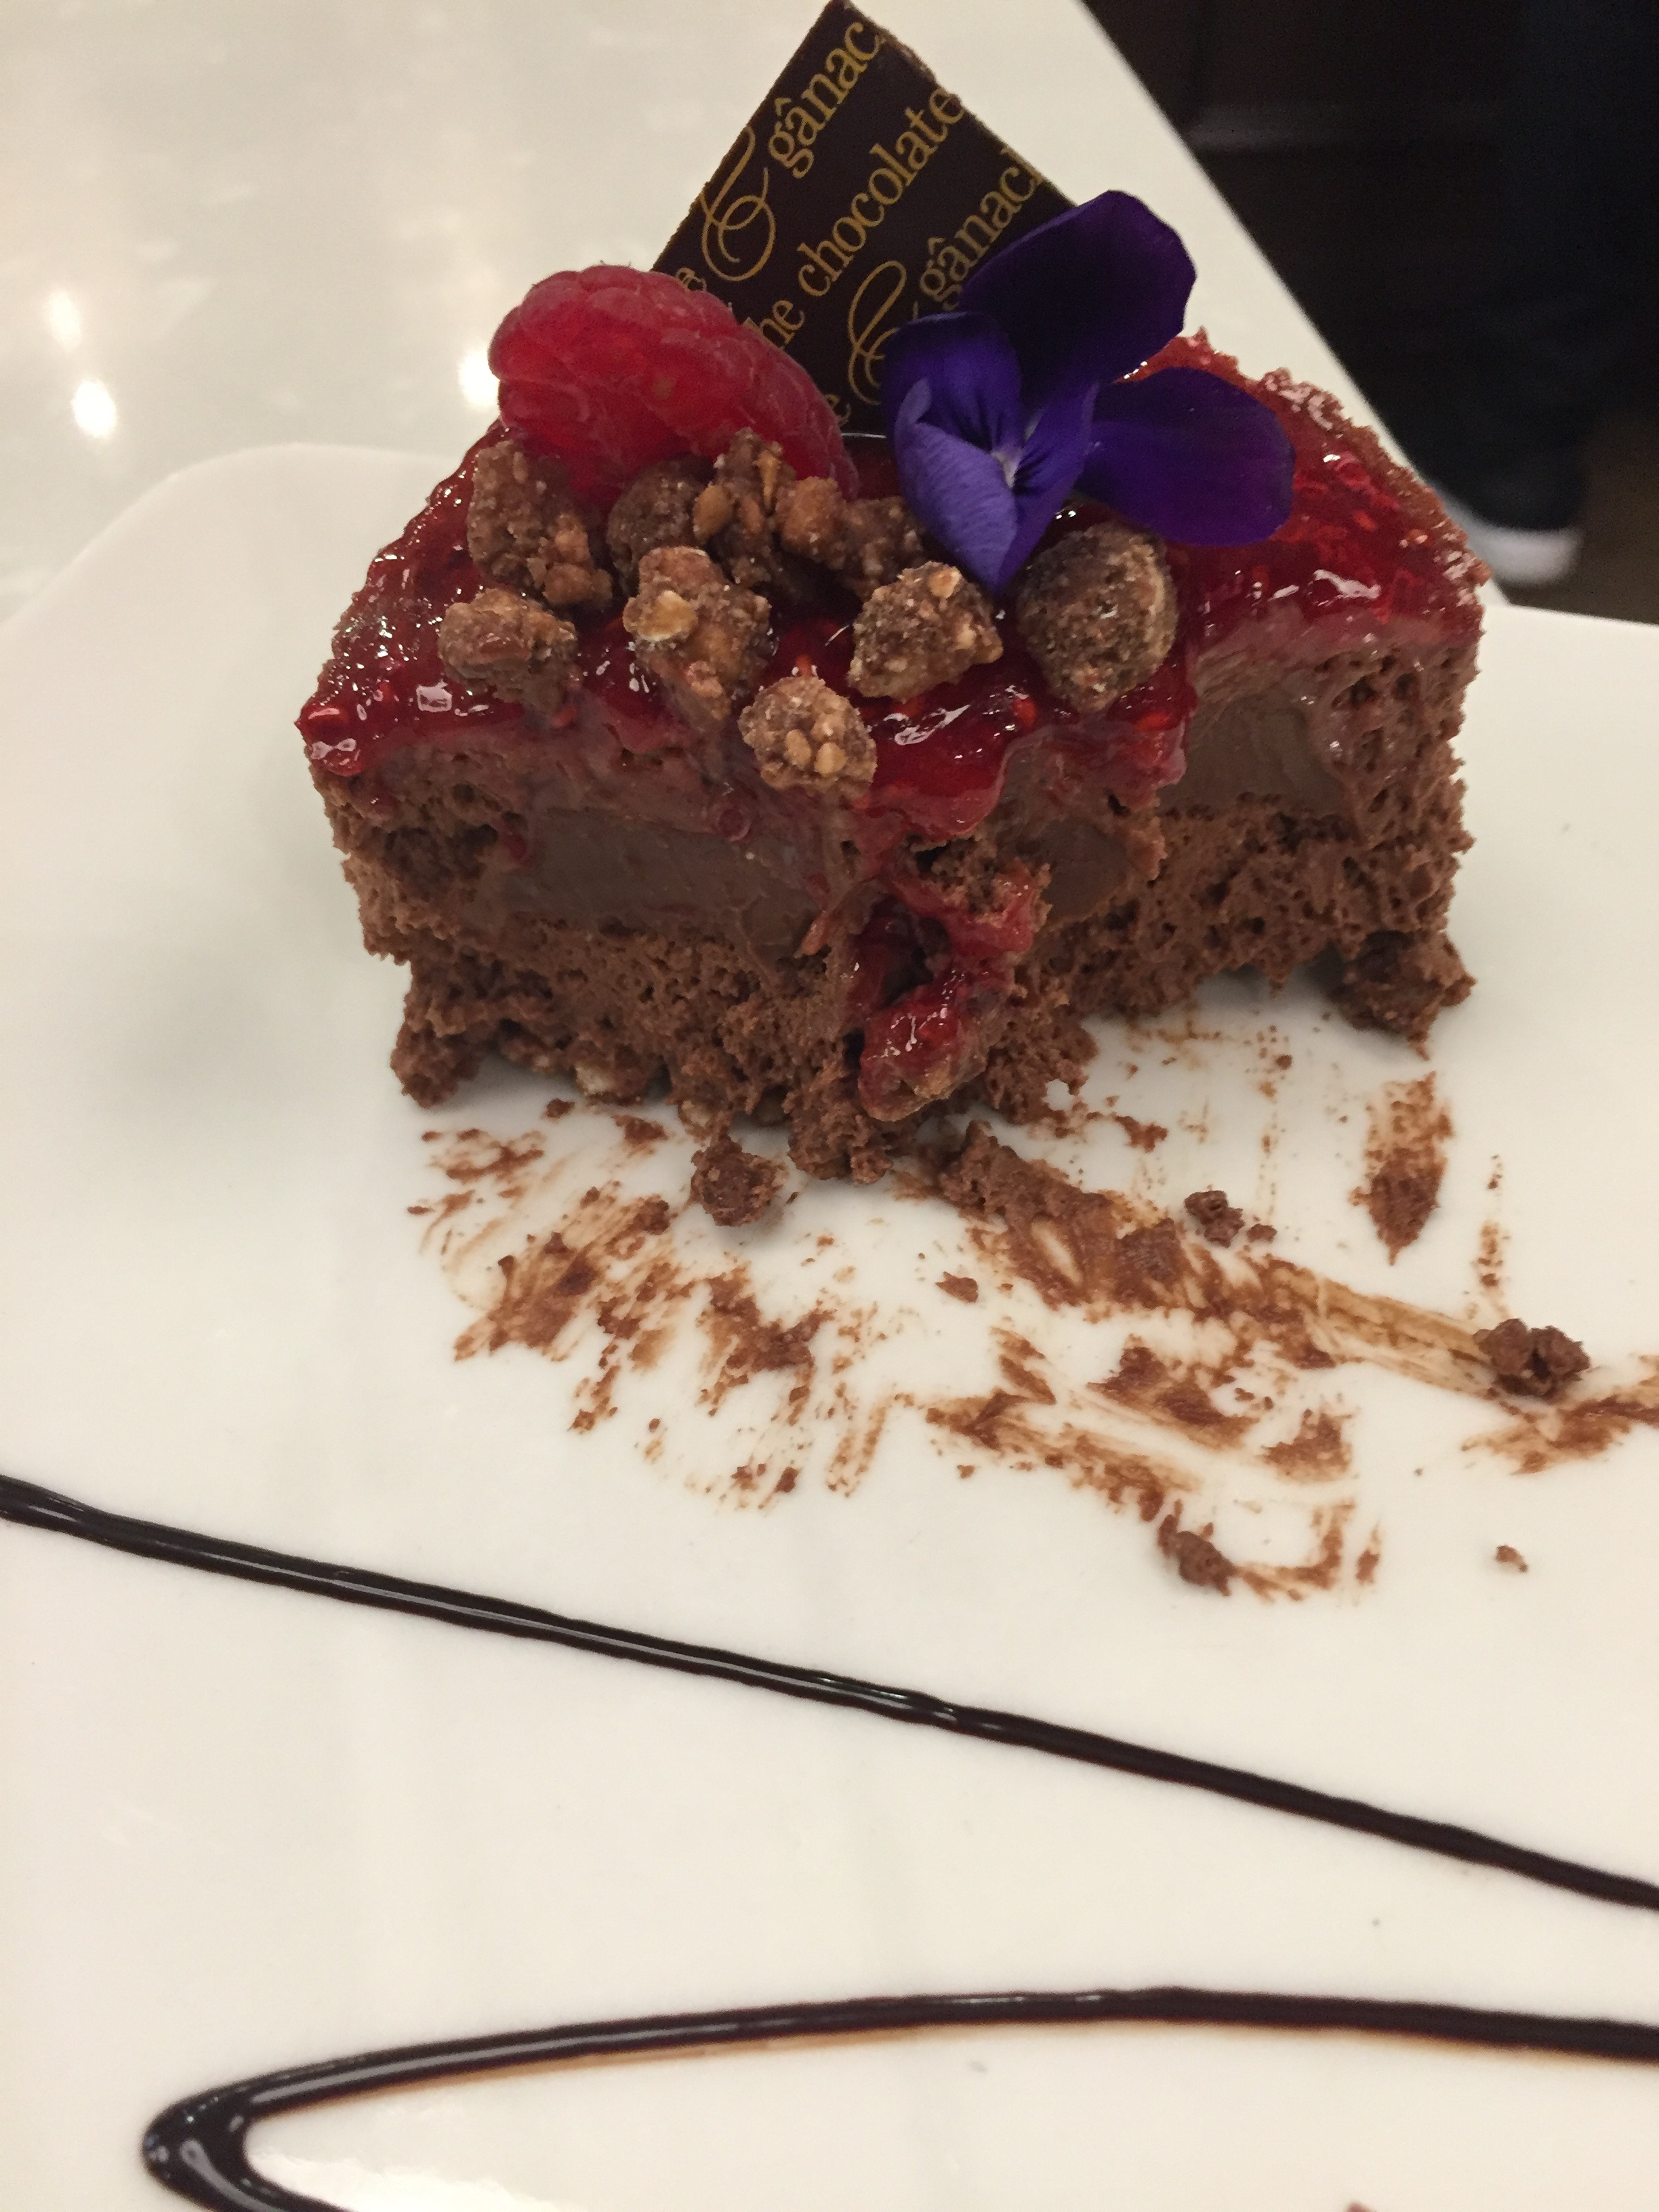 plate with partially eaten Raspberry Chocolate Mousse from Ganache Chocolate in Melbourne